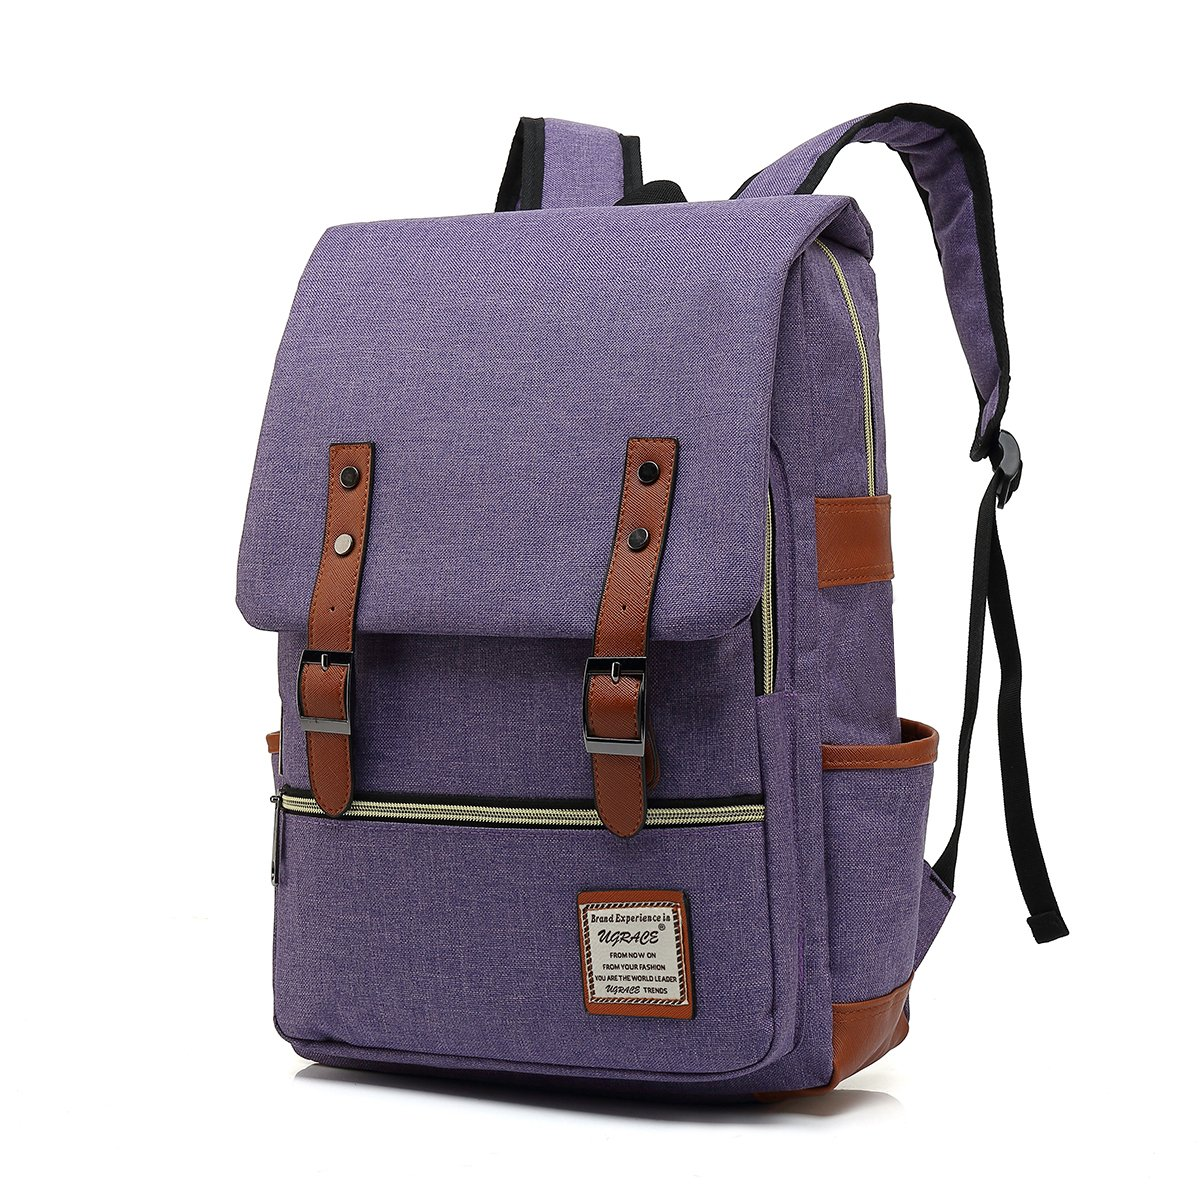 UGRACE Slim Business Laptop Backpack Elegant Casual Daypacks Outdoor Sports Rucksack School Shoulder Bag for Men Women, Tear Resistant Unique Travelling Backpack Fits up to 15.6Inch Macbook in Violet by UGRACE (Image #1)